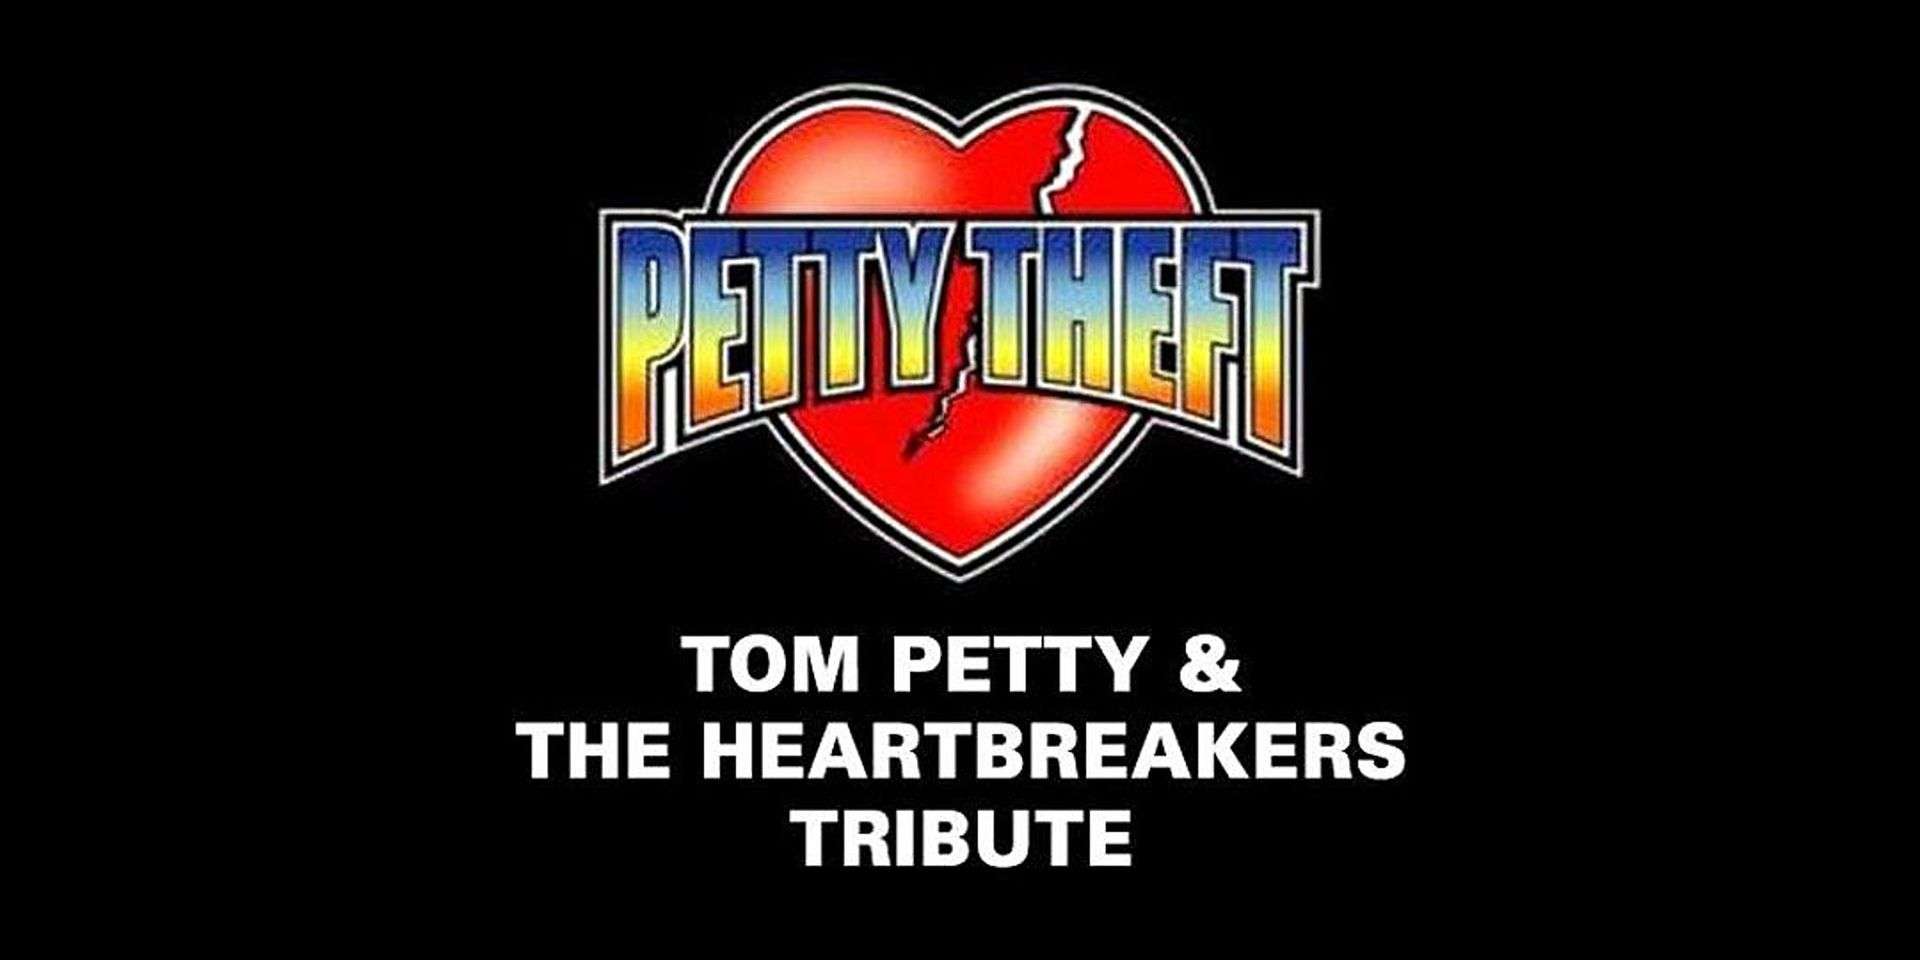 Promo image of Tom Petty and the Heartbreakers Tribute: Petty Theft